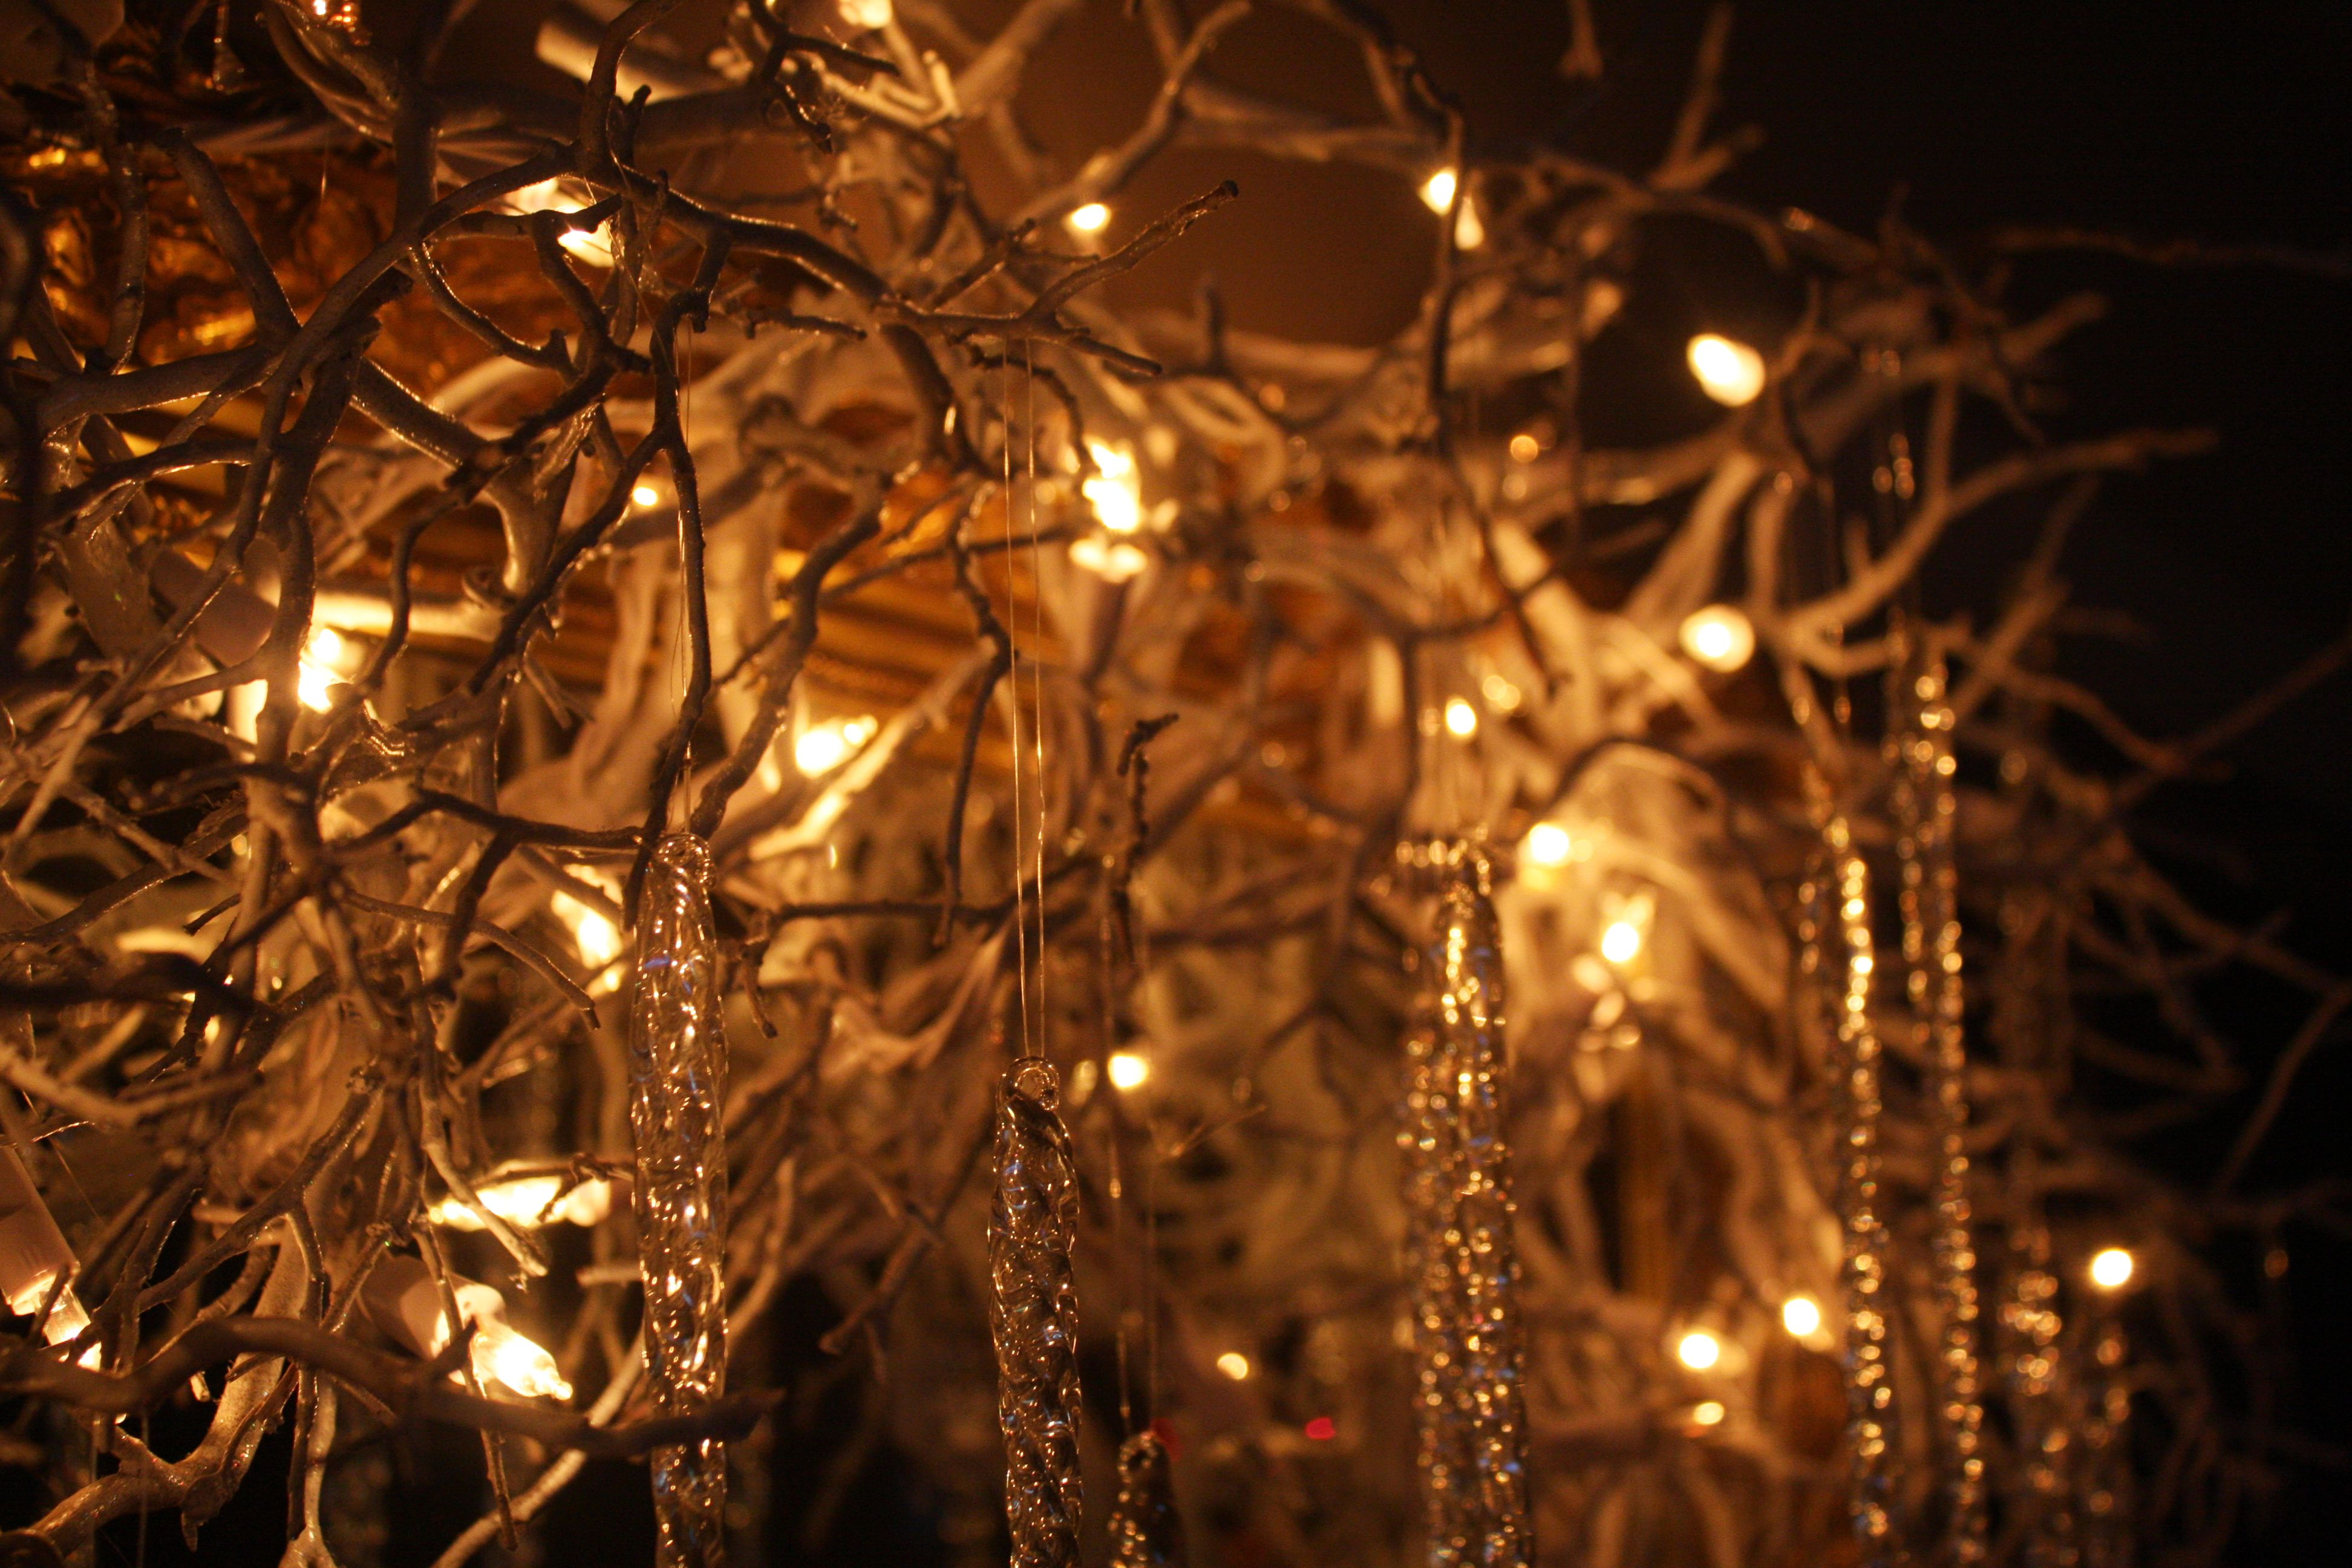 Twigs Branches Spray Painted Or Natural With White Lights